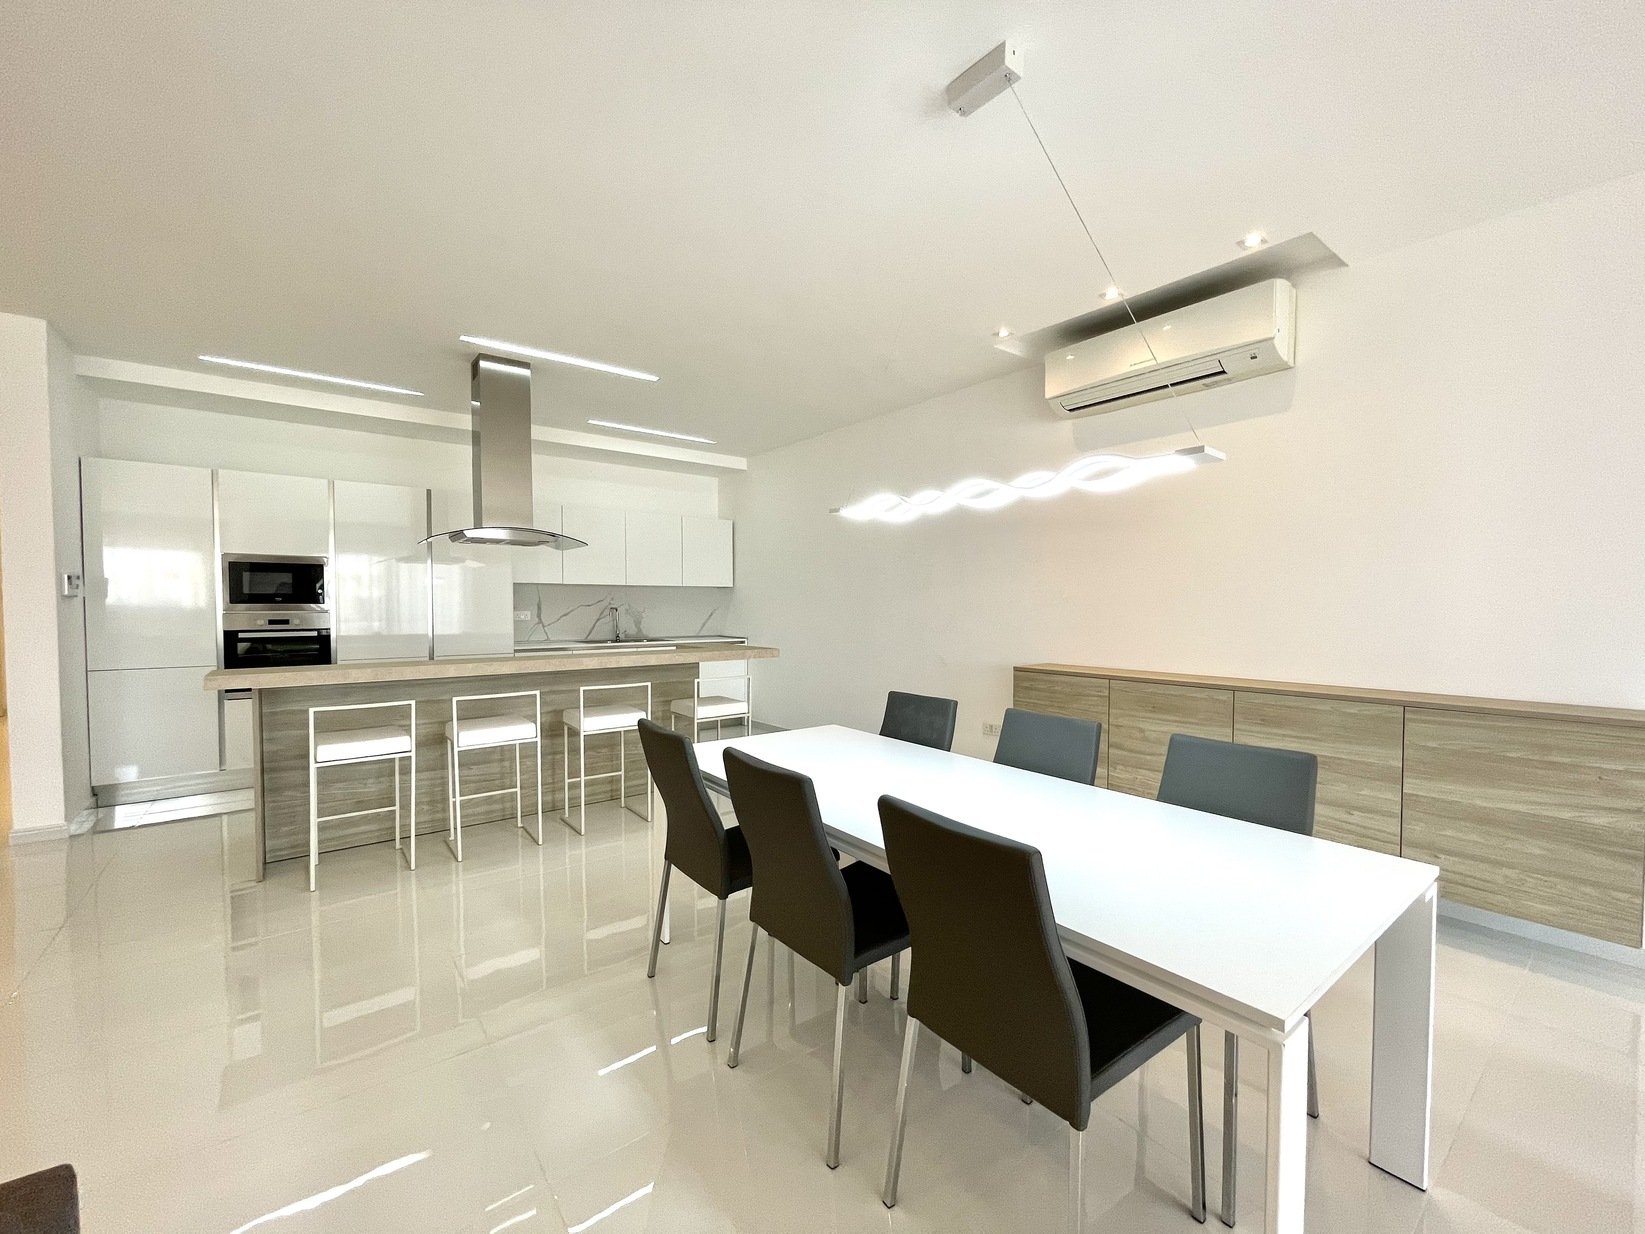 3 bed Apartment For Rent in Zejtun, Zejtun - thumb 9